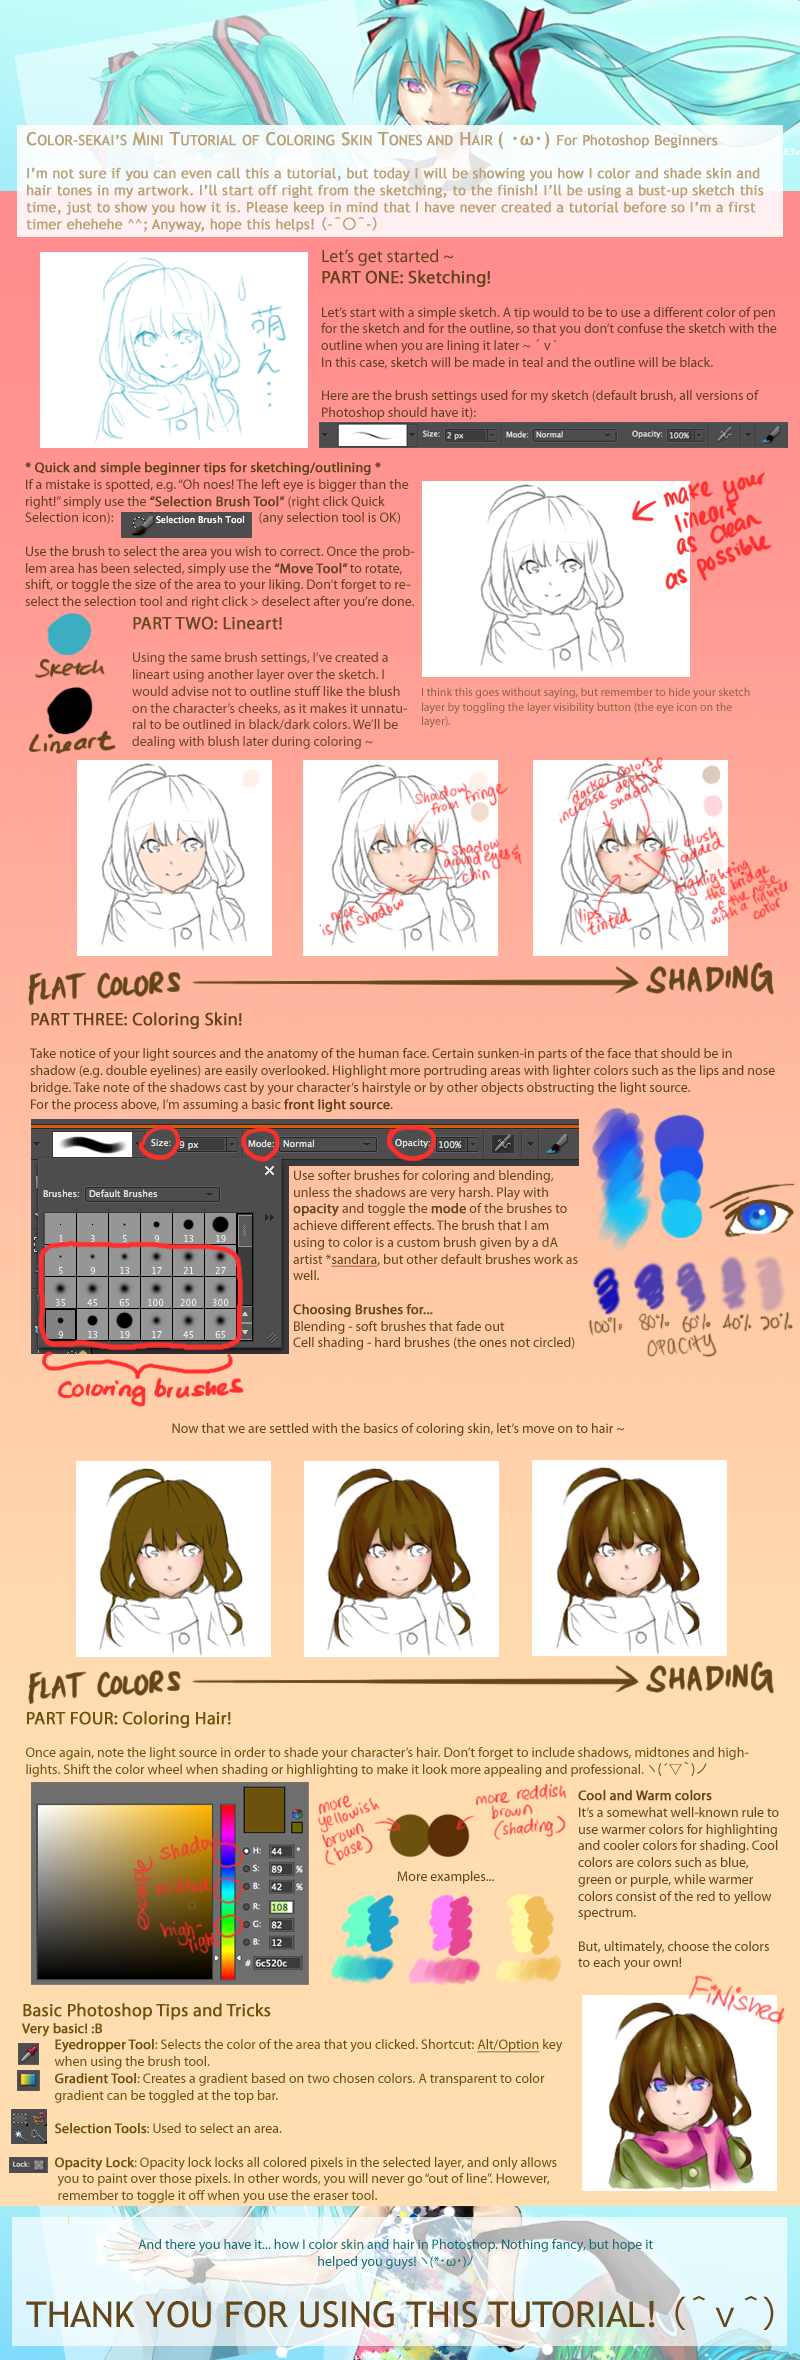 Mini Coloring Tutorial for Photoshop Beginners by color-sekai